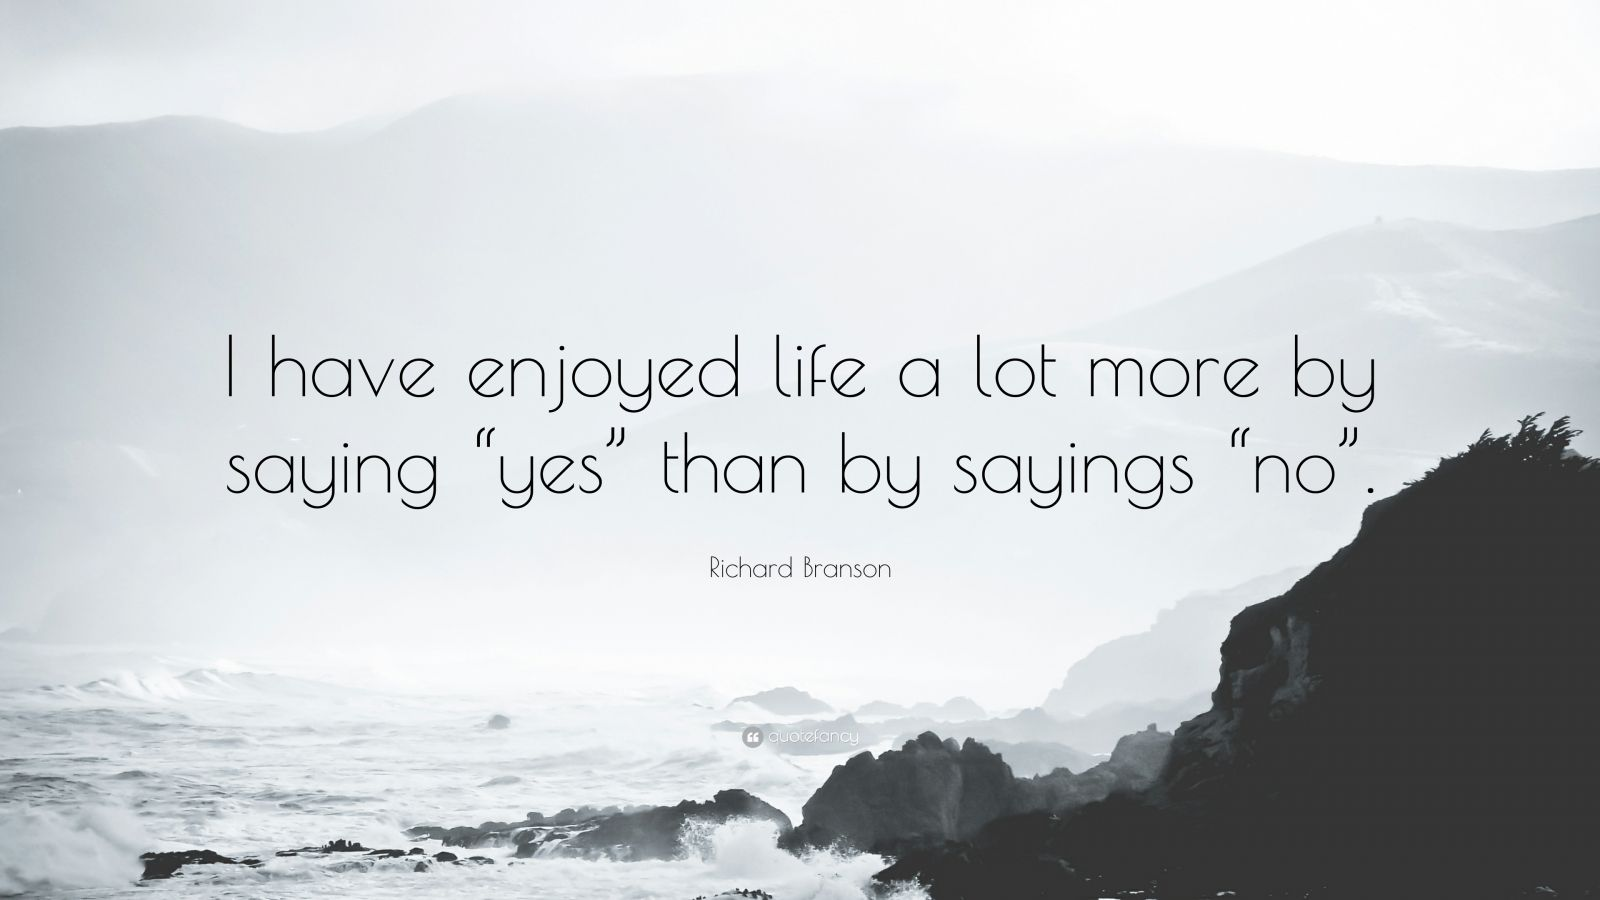 """Richard Branson Quote: """"I have enjoyed life a lot more by saying """"yes"""" than by sayings """"no""""."""""""